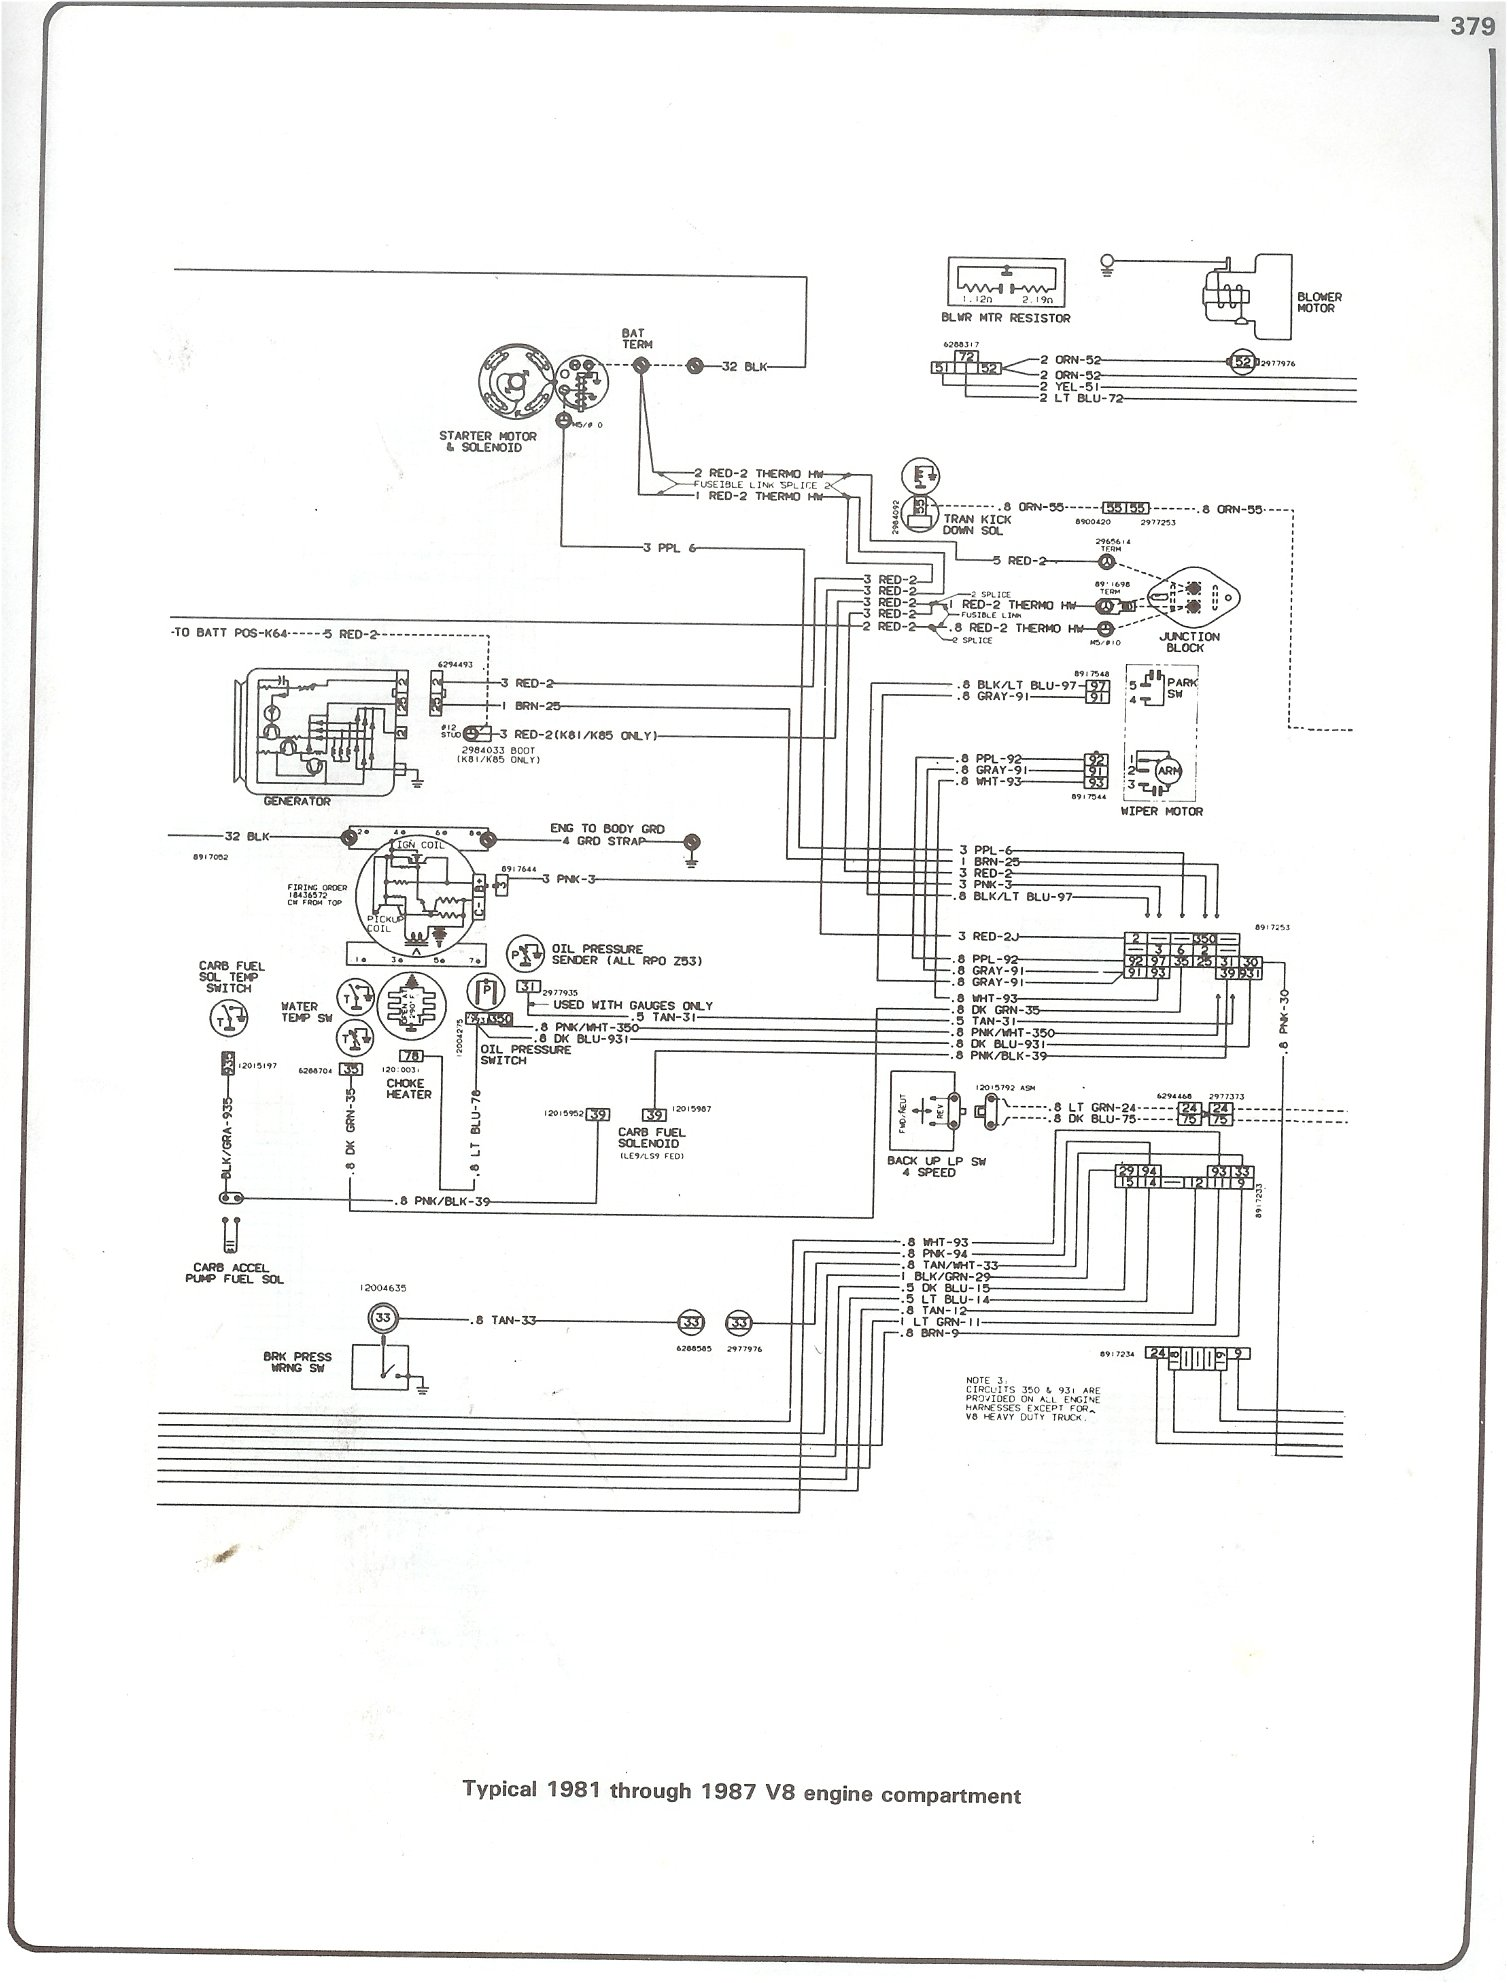 hight resolution of complete 73 87 wiring diagrams ford wiring schematics 81 87 v8 engine compartment